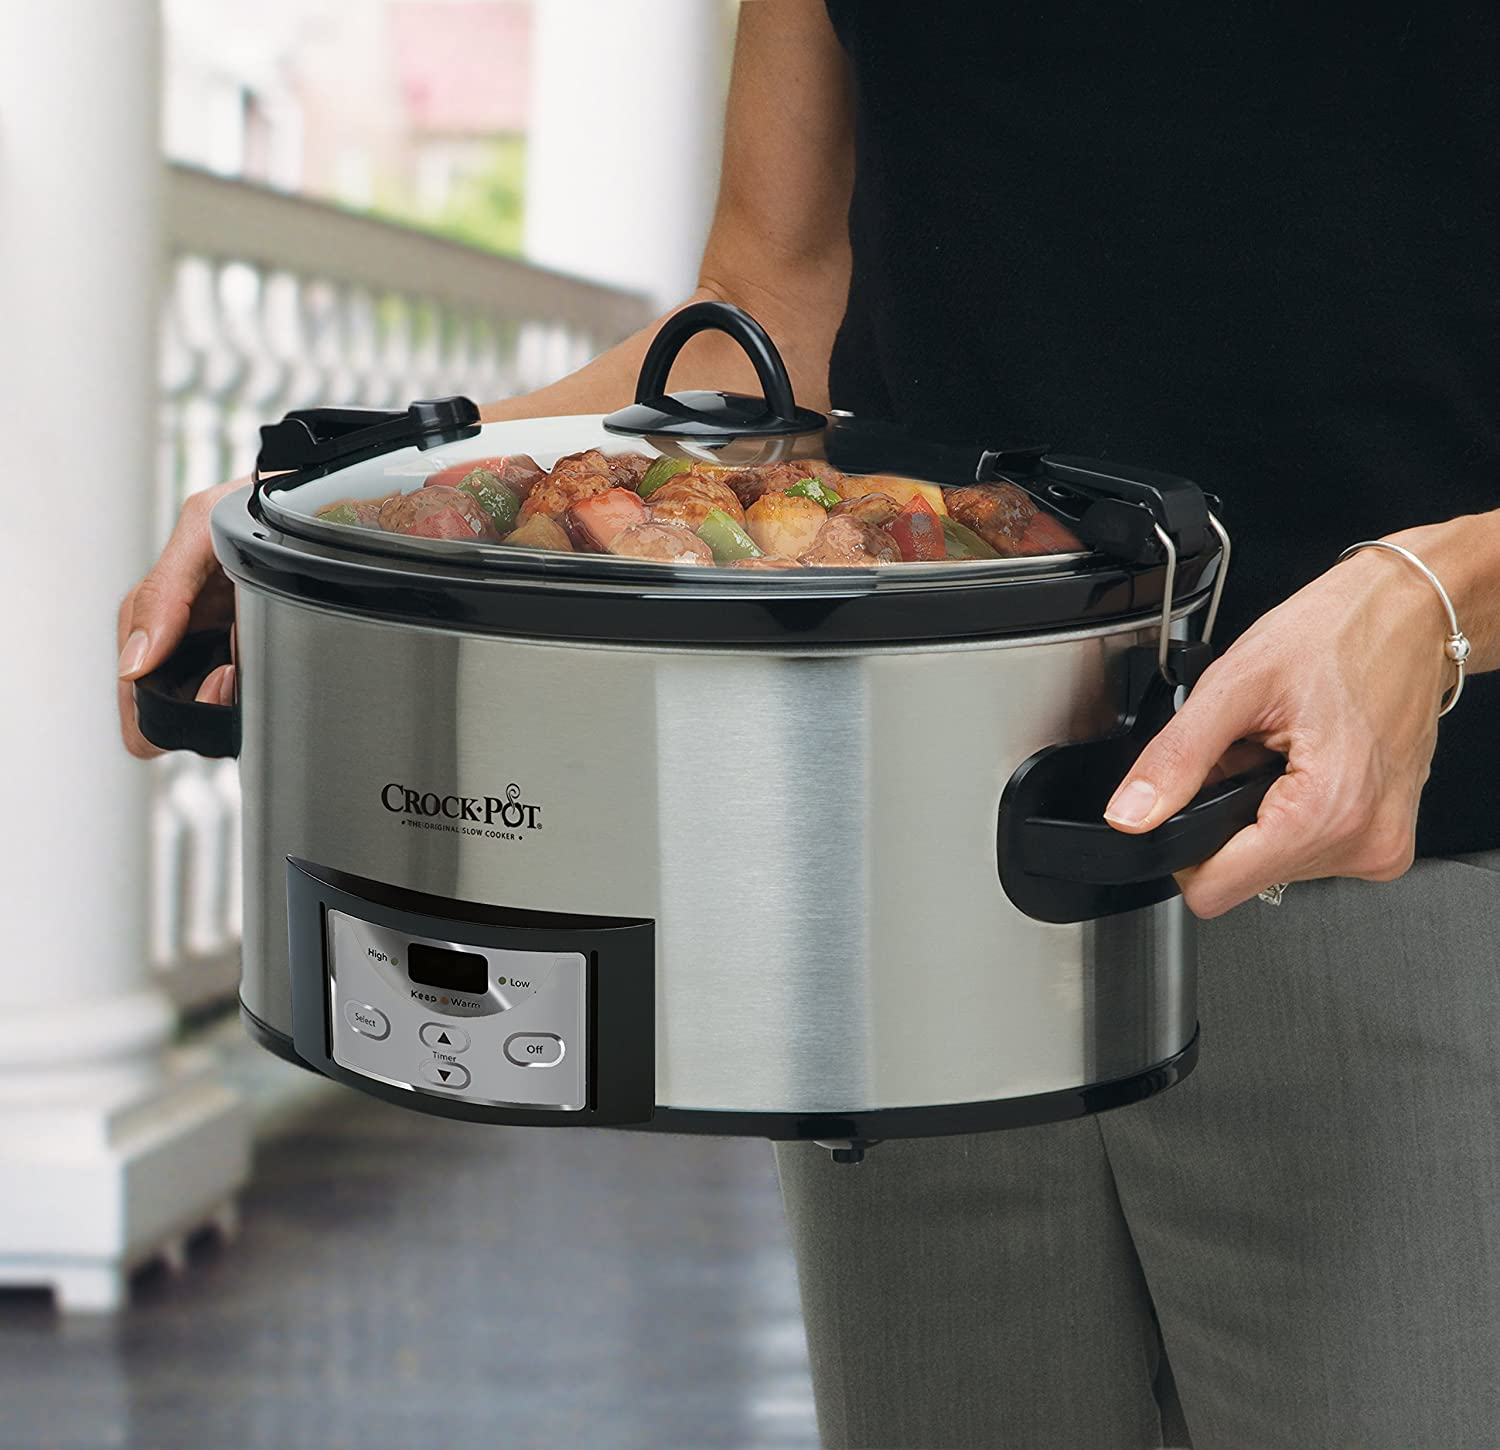 Awesome kitchen gadgets do i really need an instant pot Awesome kitchen gadgets